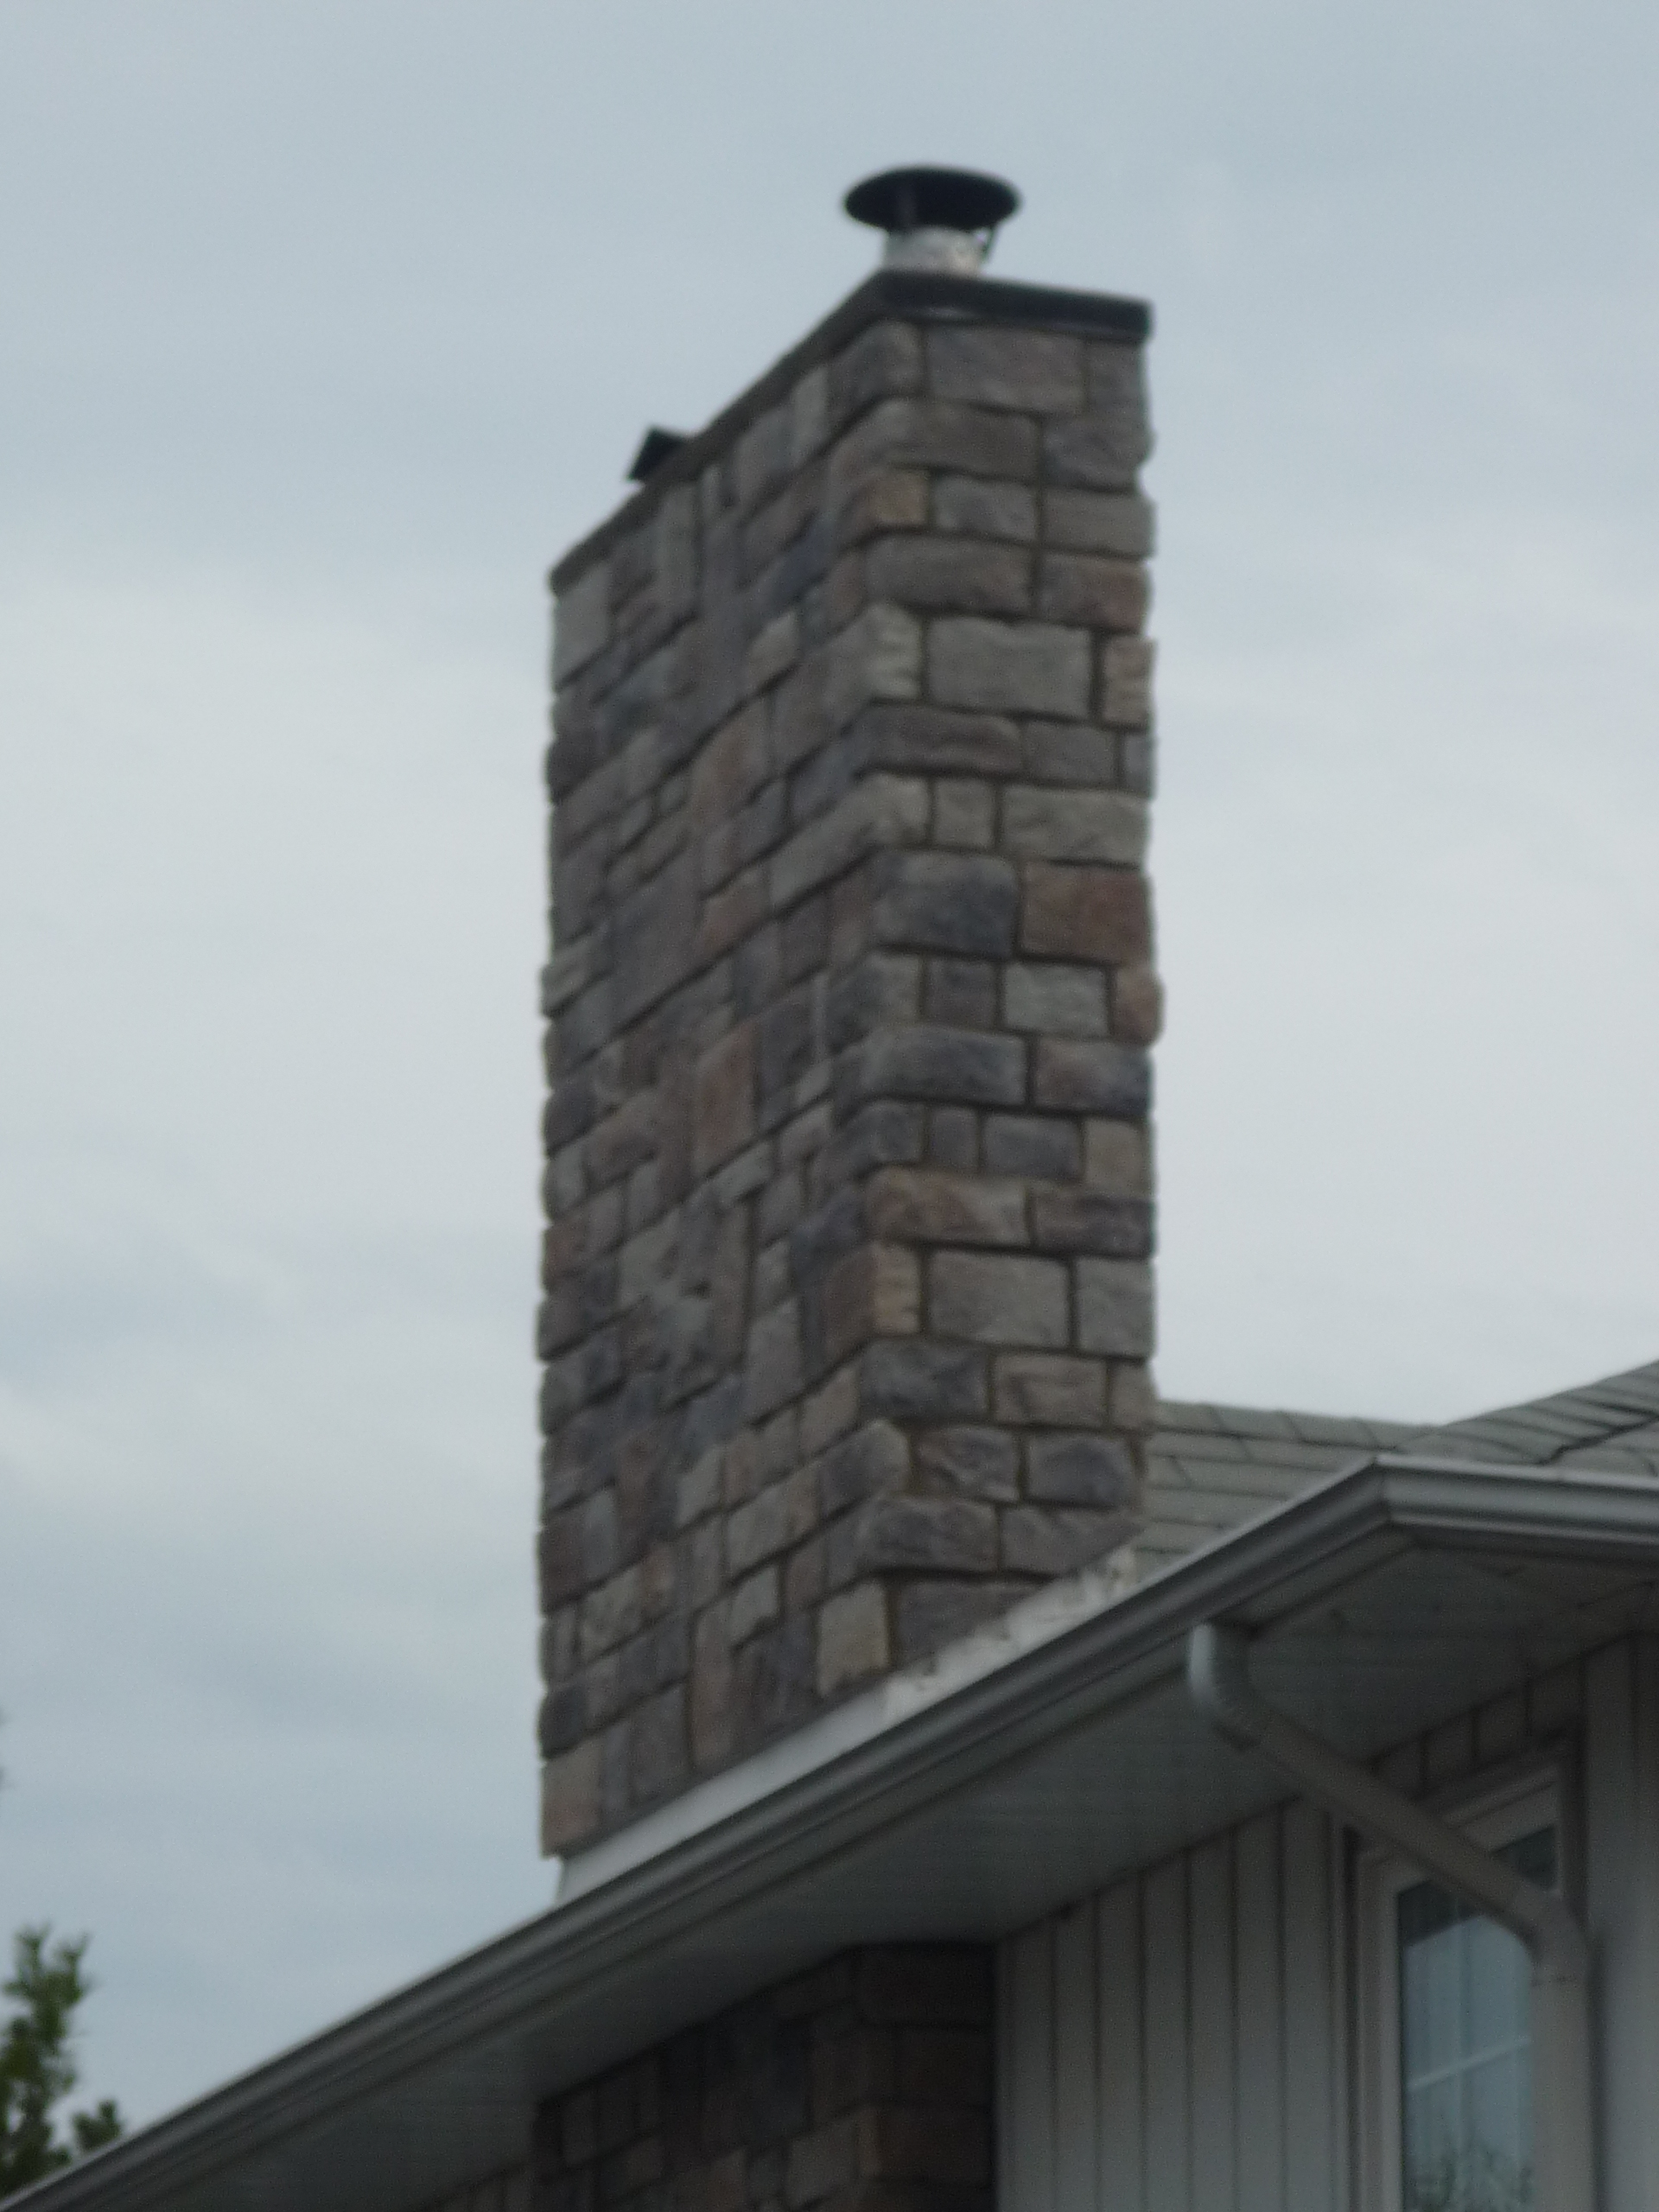 Chimney - Ledge Stone